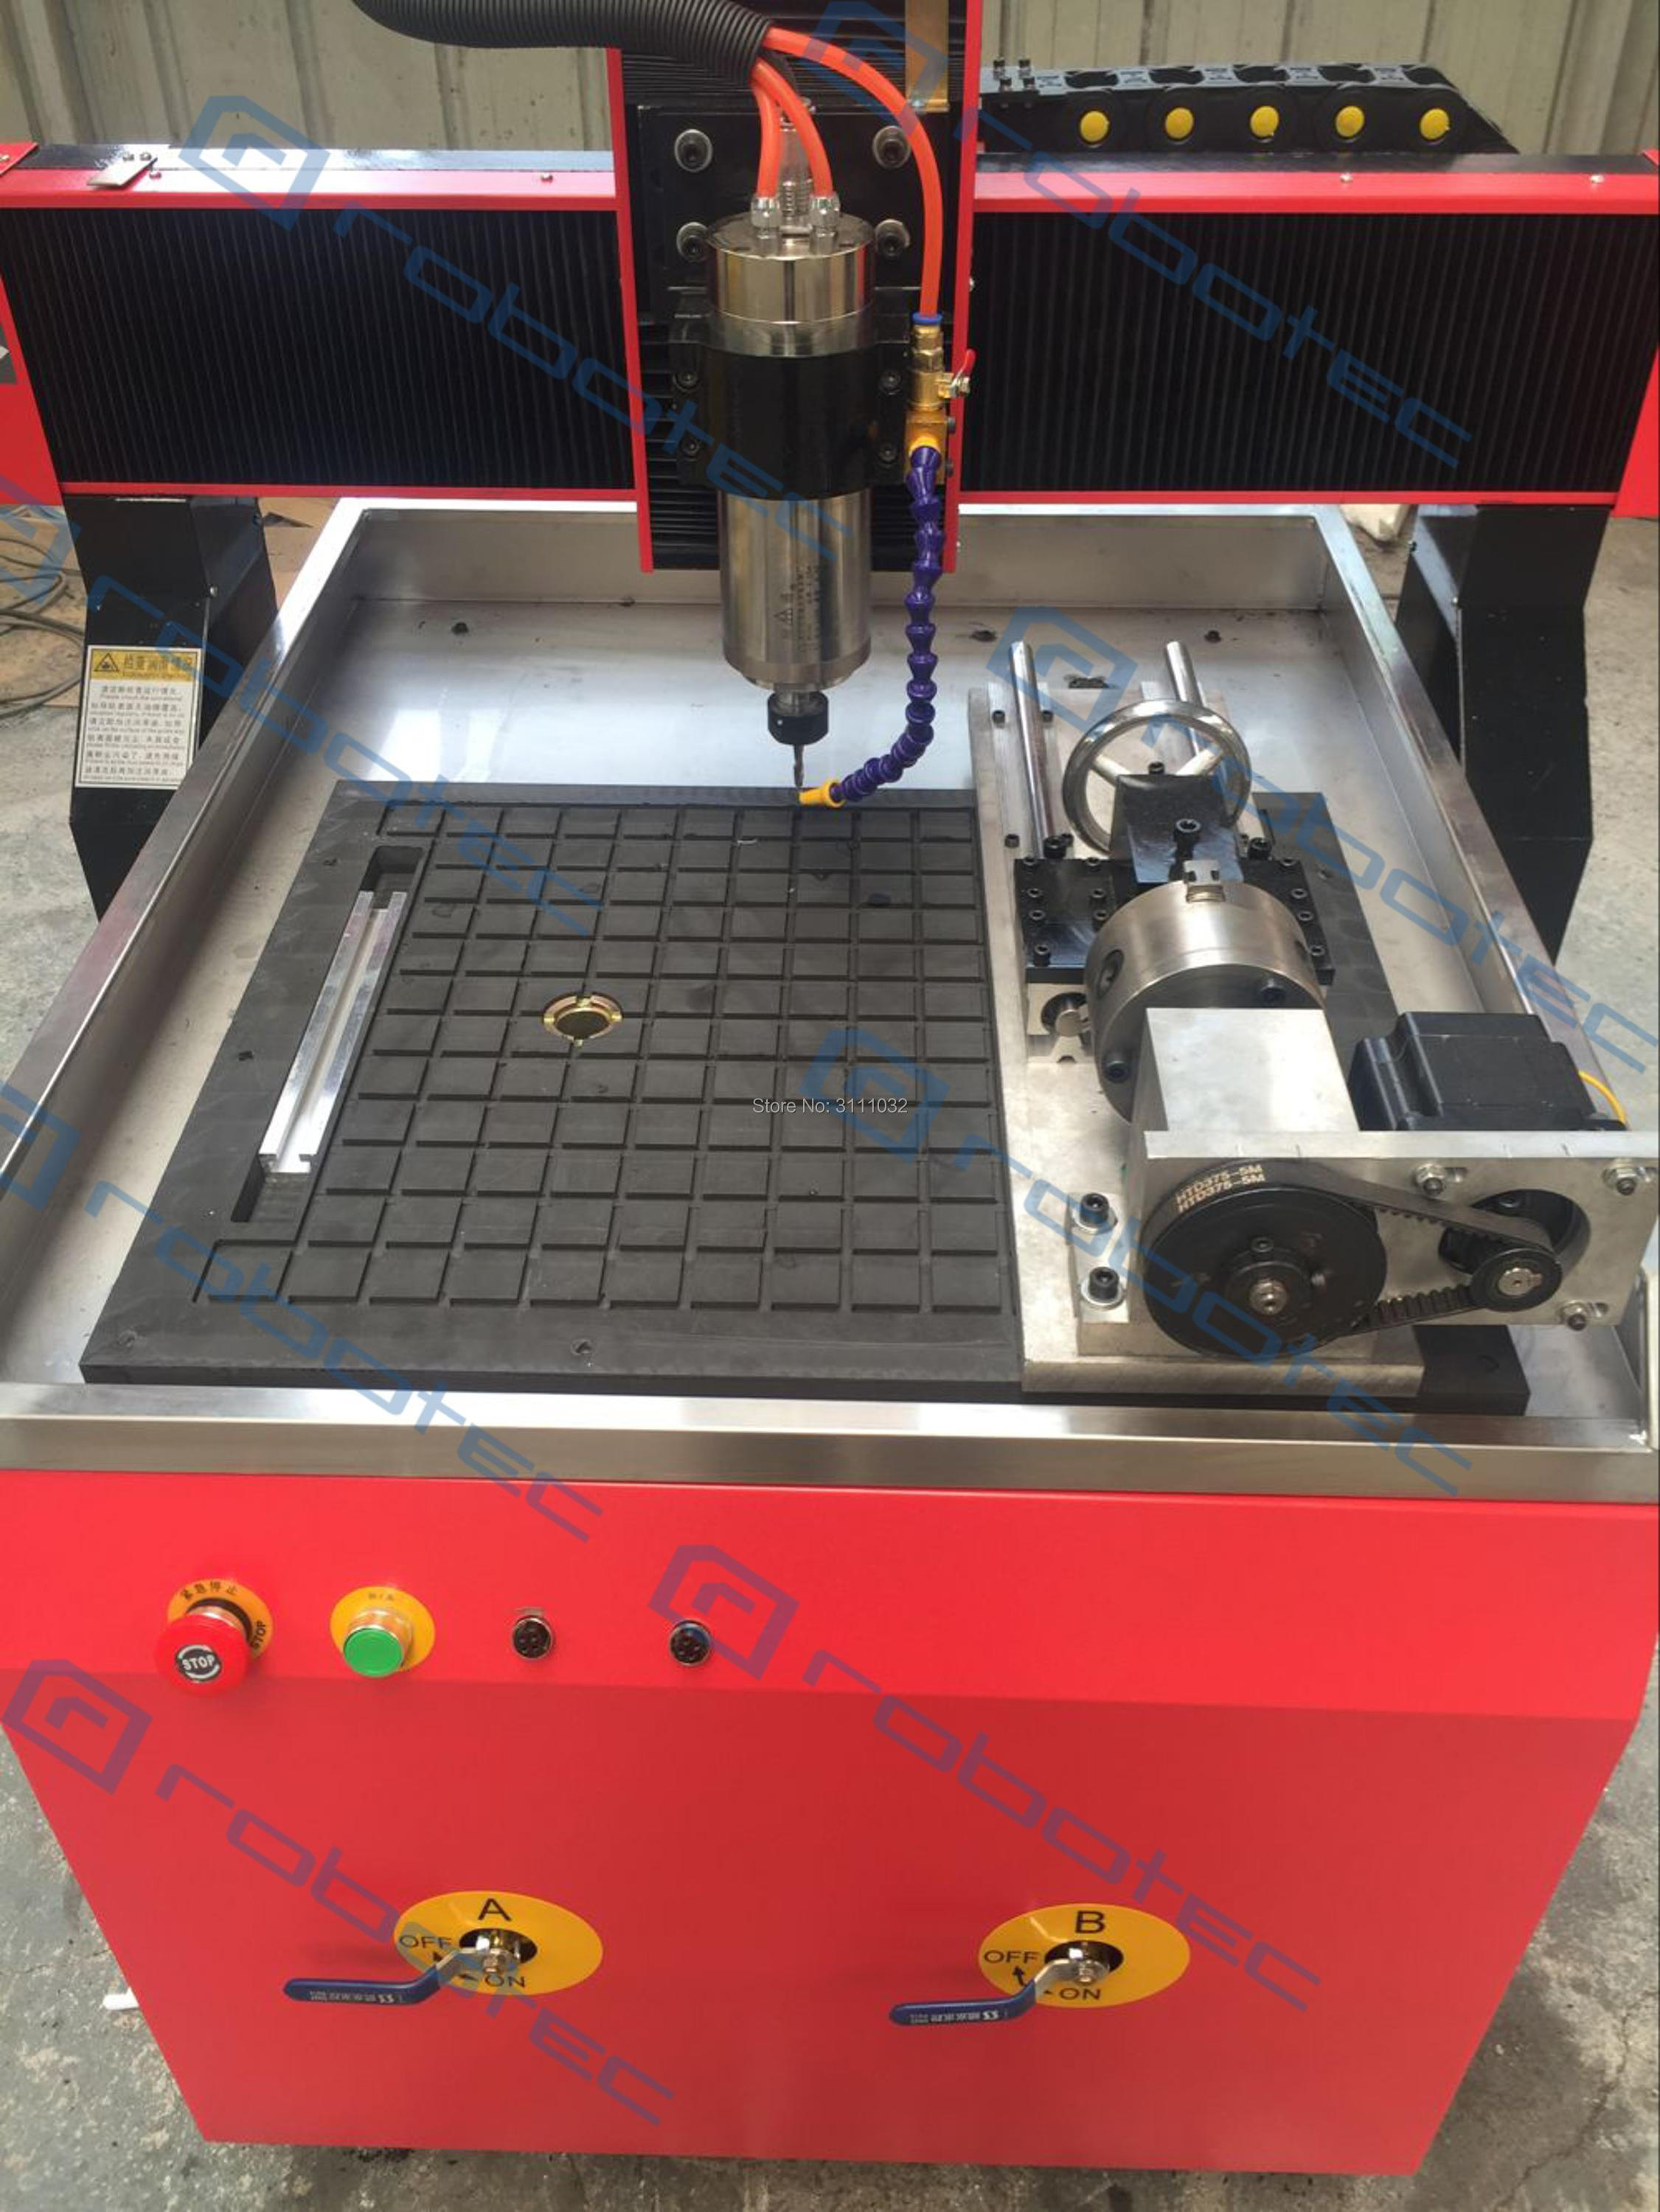 Hobby 3D Mini Desktop 6090 CNC Router Mini 3D artwork PCB Stone Metal Engraving and Cutting CNC Router hot top quality and agent wanted cnc router 6090 cnc cutting machines